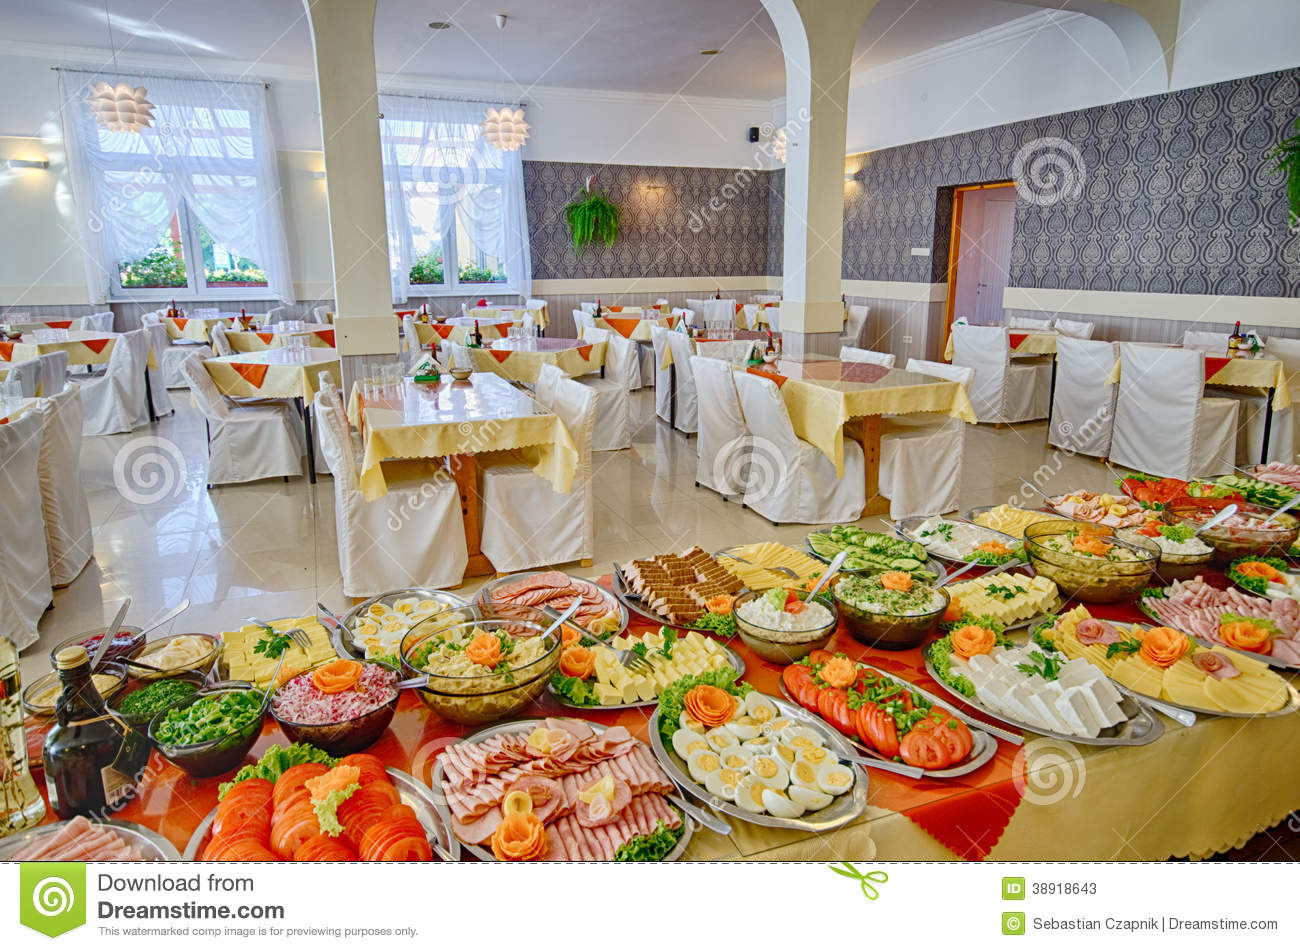 Platters and dishes of Food set up for a large catered dinner or lunch ...